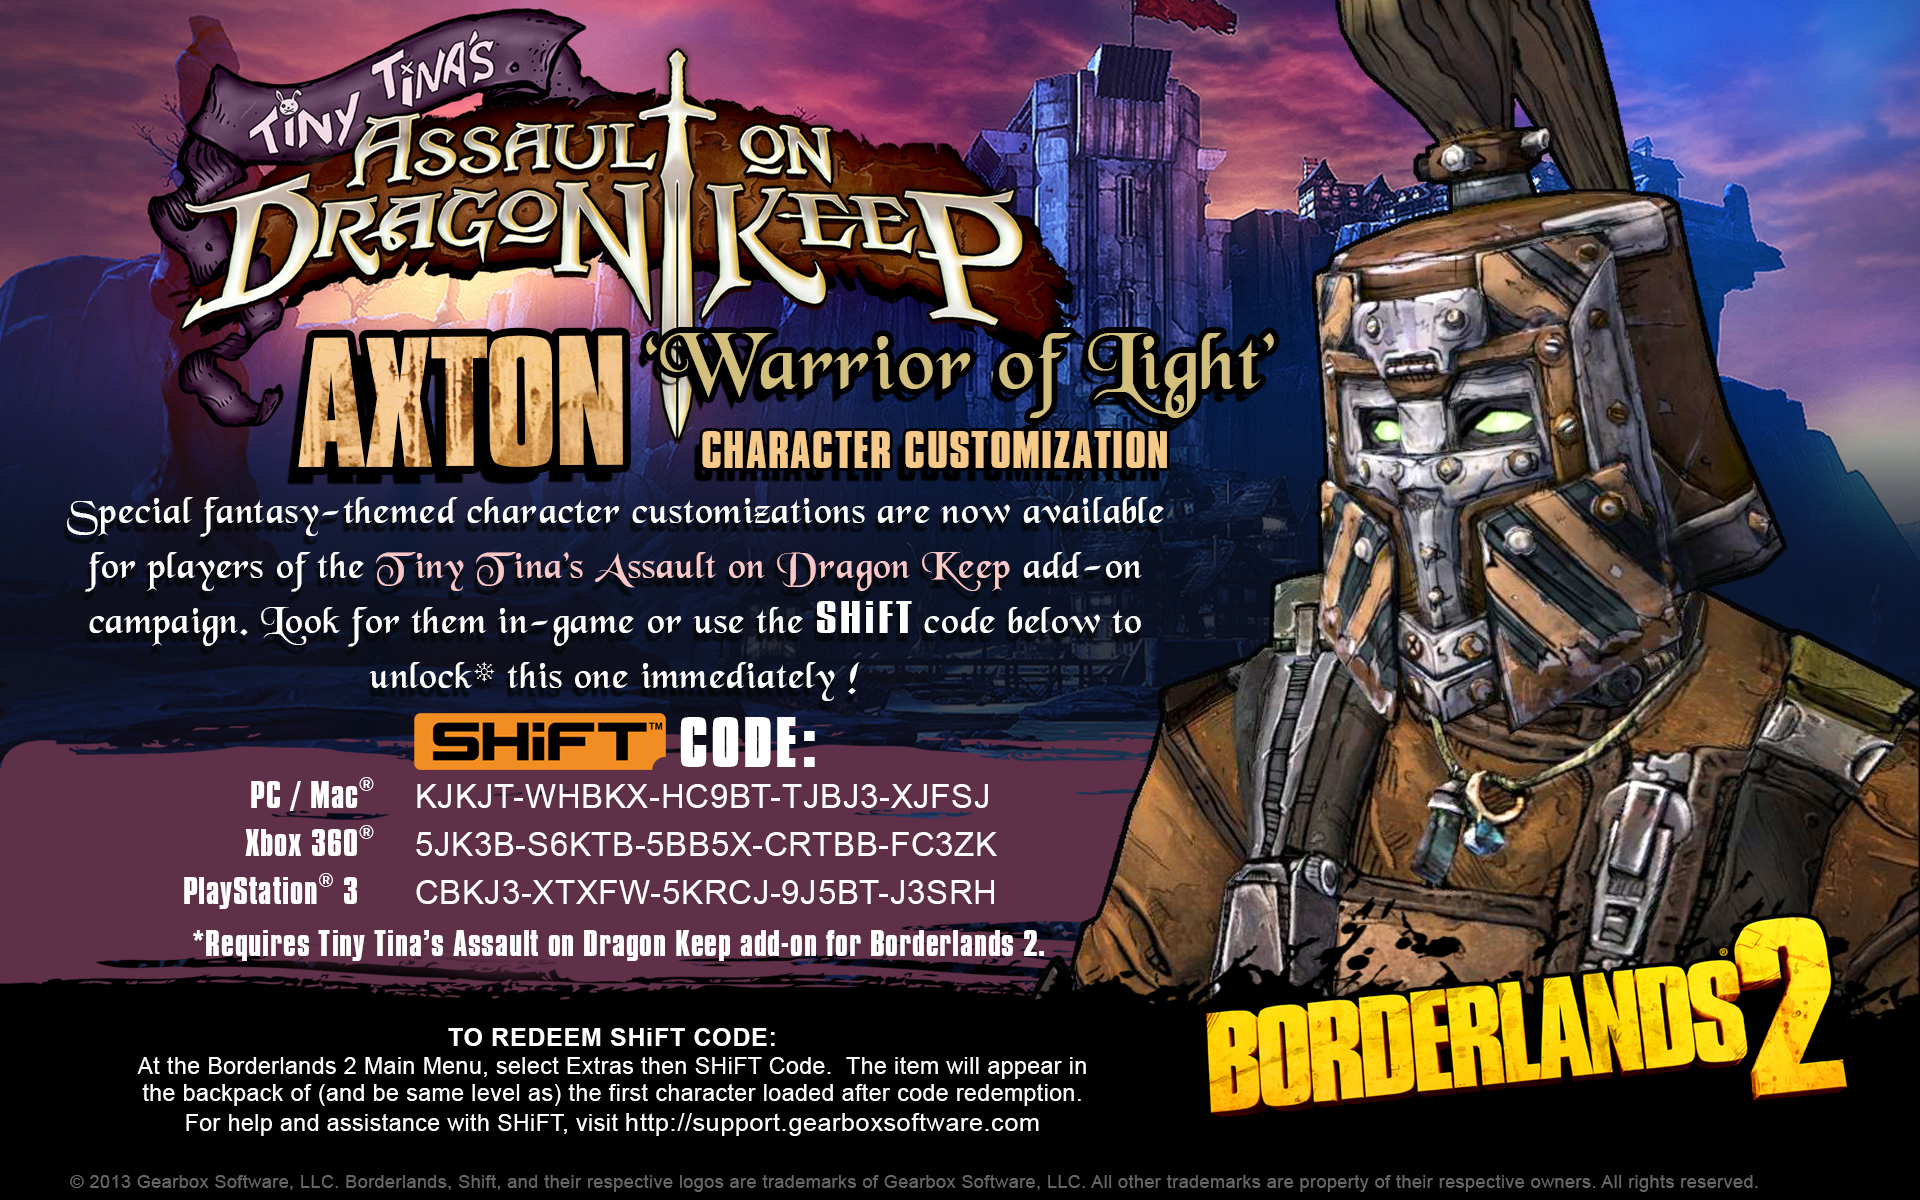 Borderlands 2 shift codes – Conexión de un enrutador equipo Borderlands The Pre Sequel Shift Codes